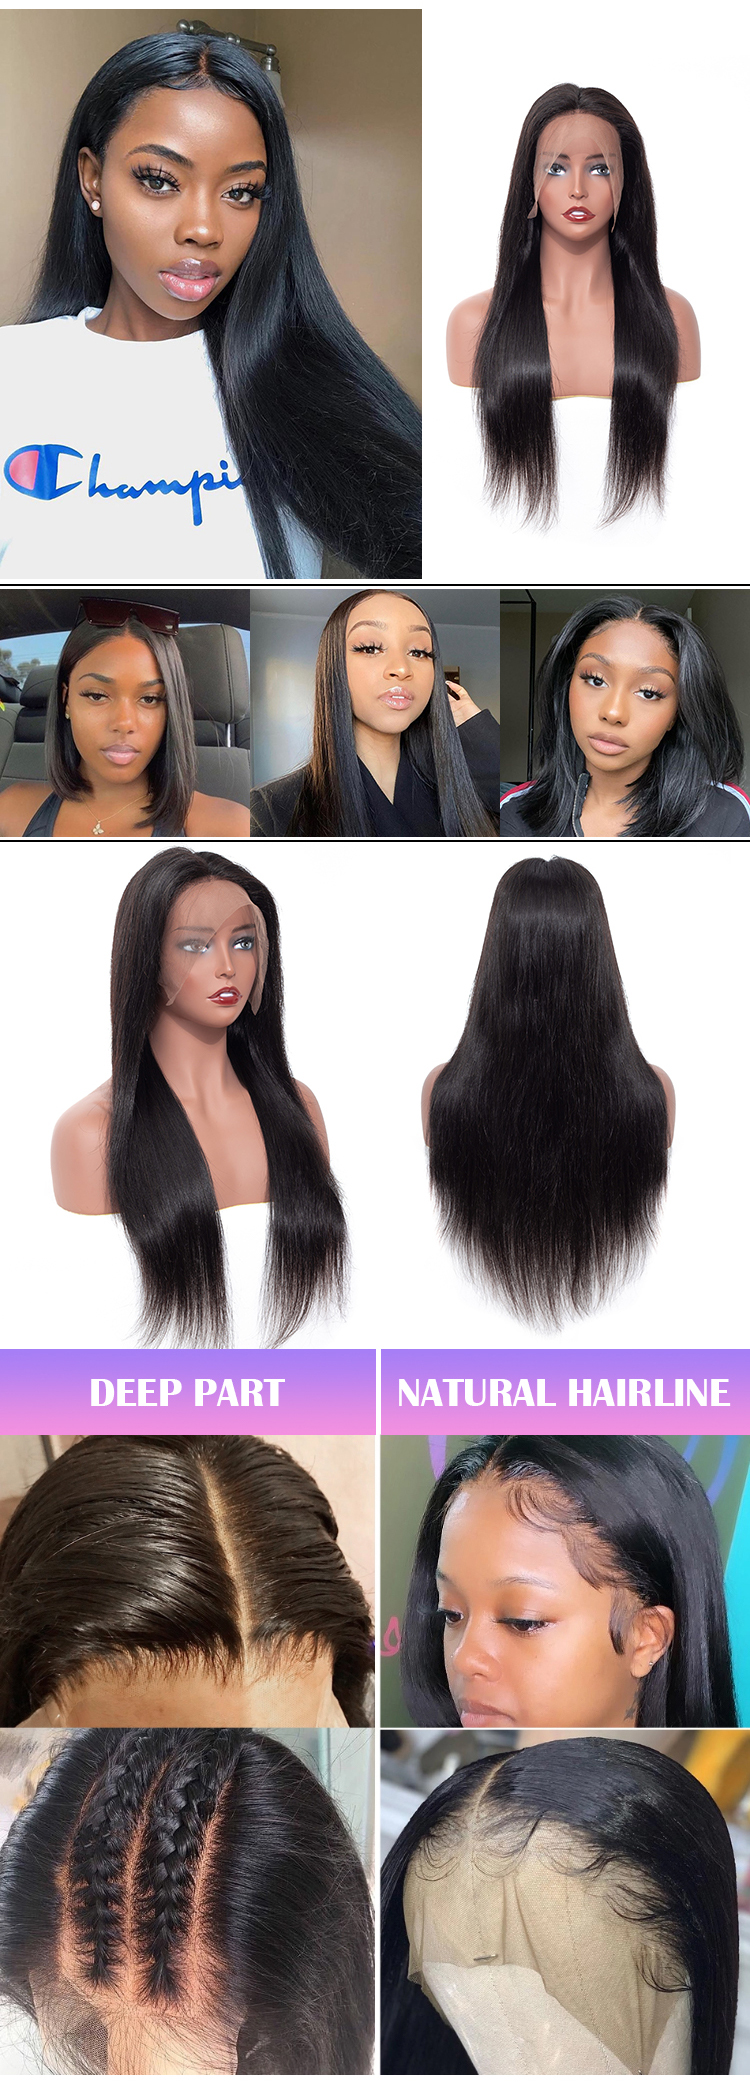 High Quality Raw Cambodian Hair Swiss Lace Wig For Black Women 100% Brazilian Virgin Cuticle Aligned Lace Front Human Hair Wig